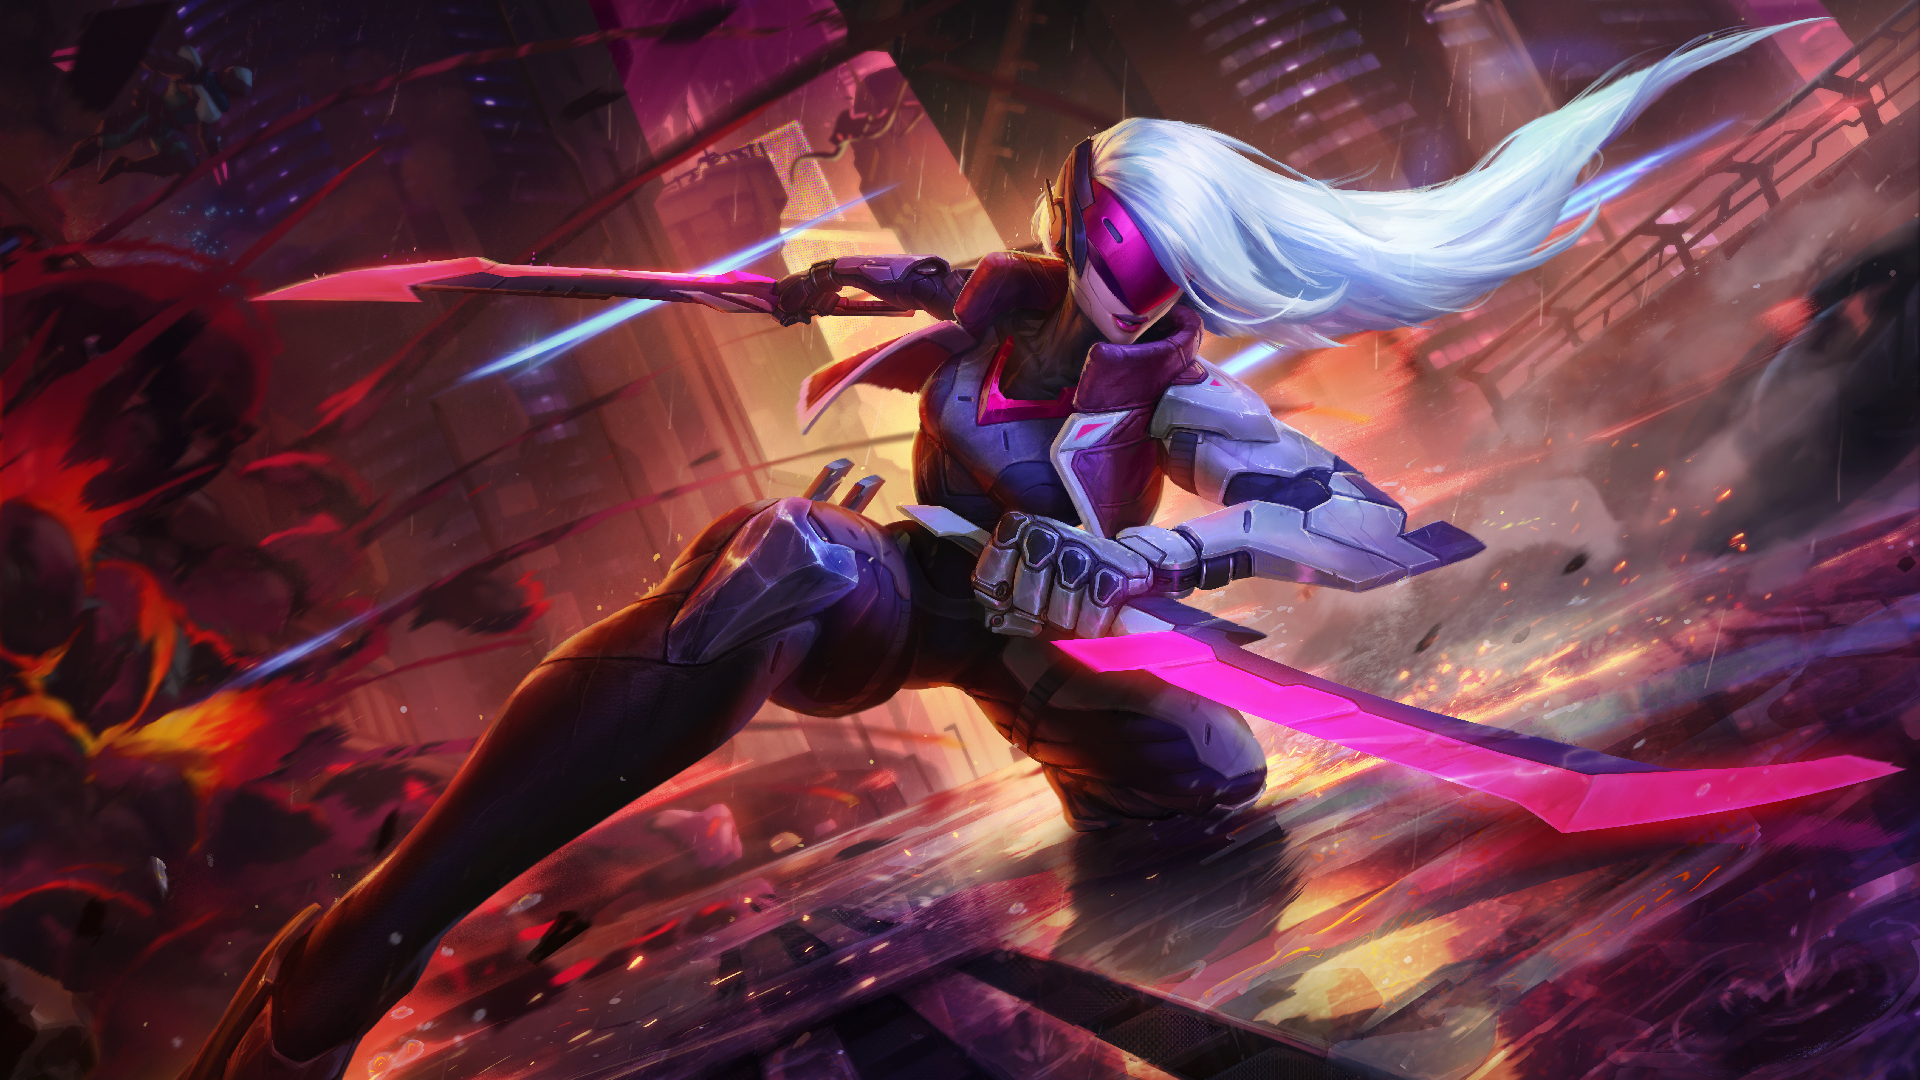 project katarina league of legends wallpapers hd wallpapers